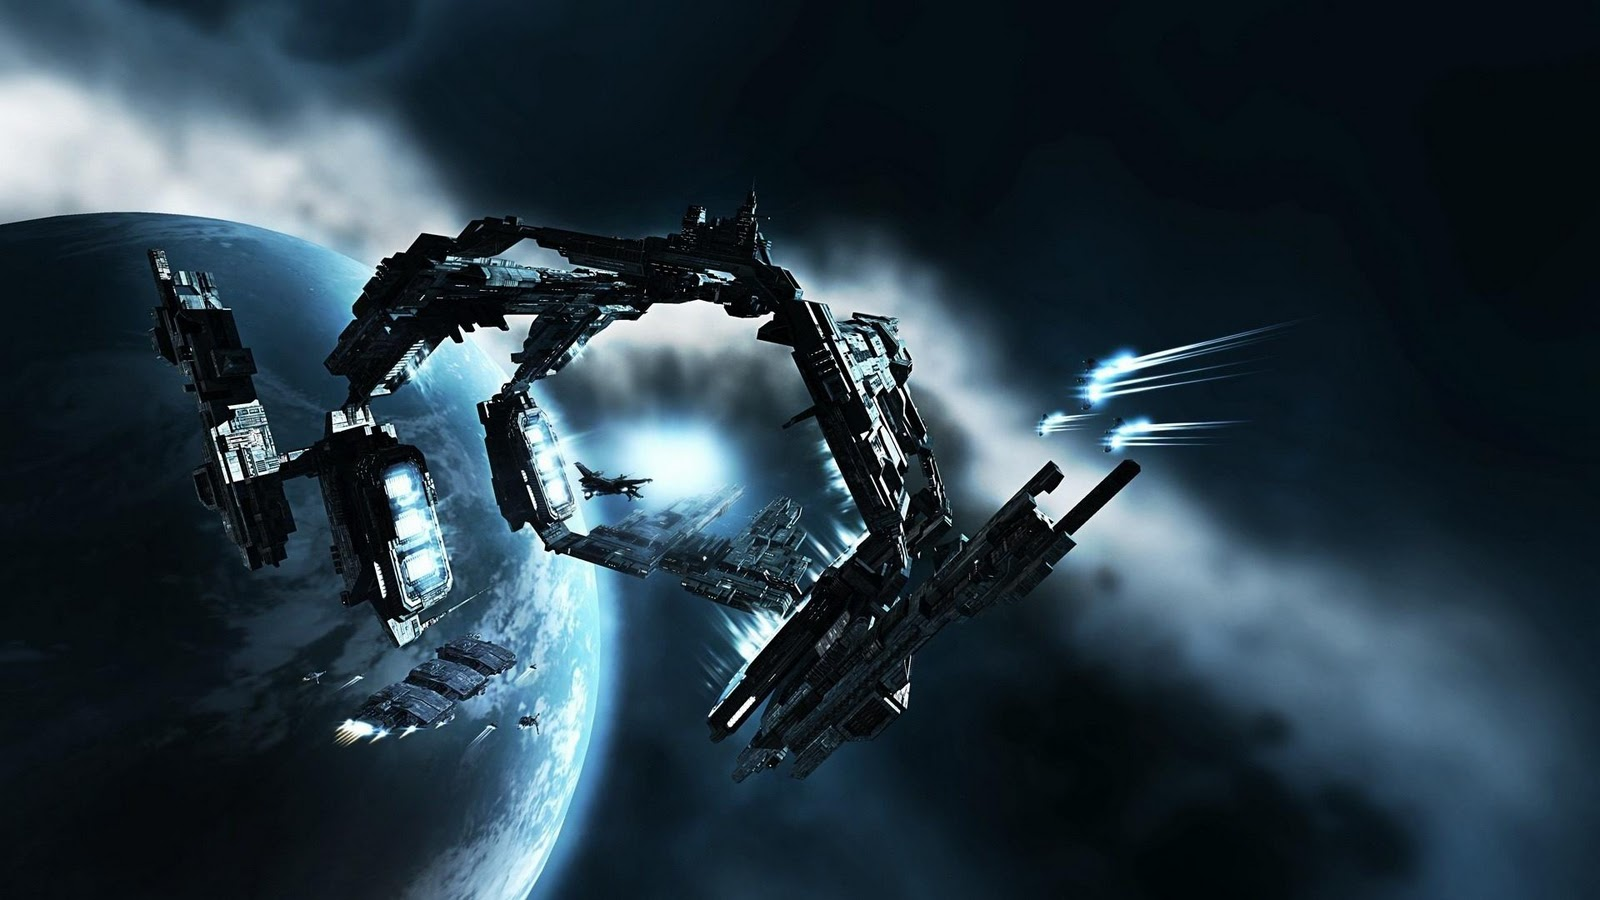 iPad HD 3D Space Widescreen Desktop Wallpaper 1600x900